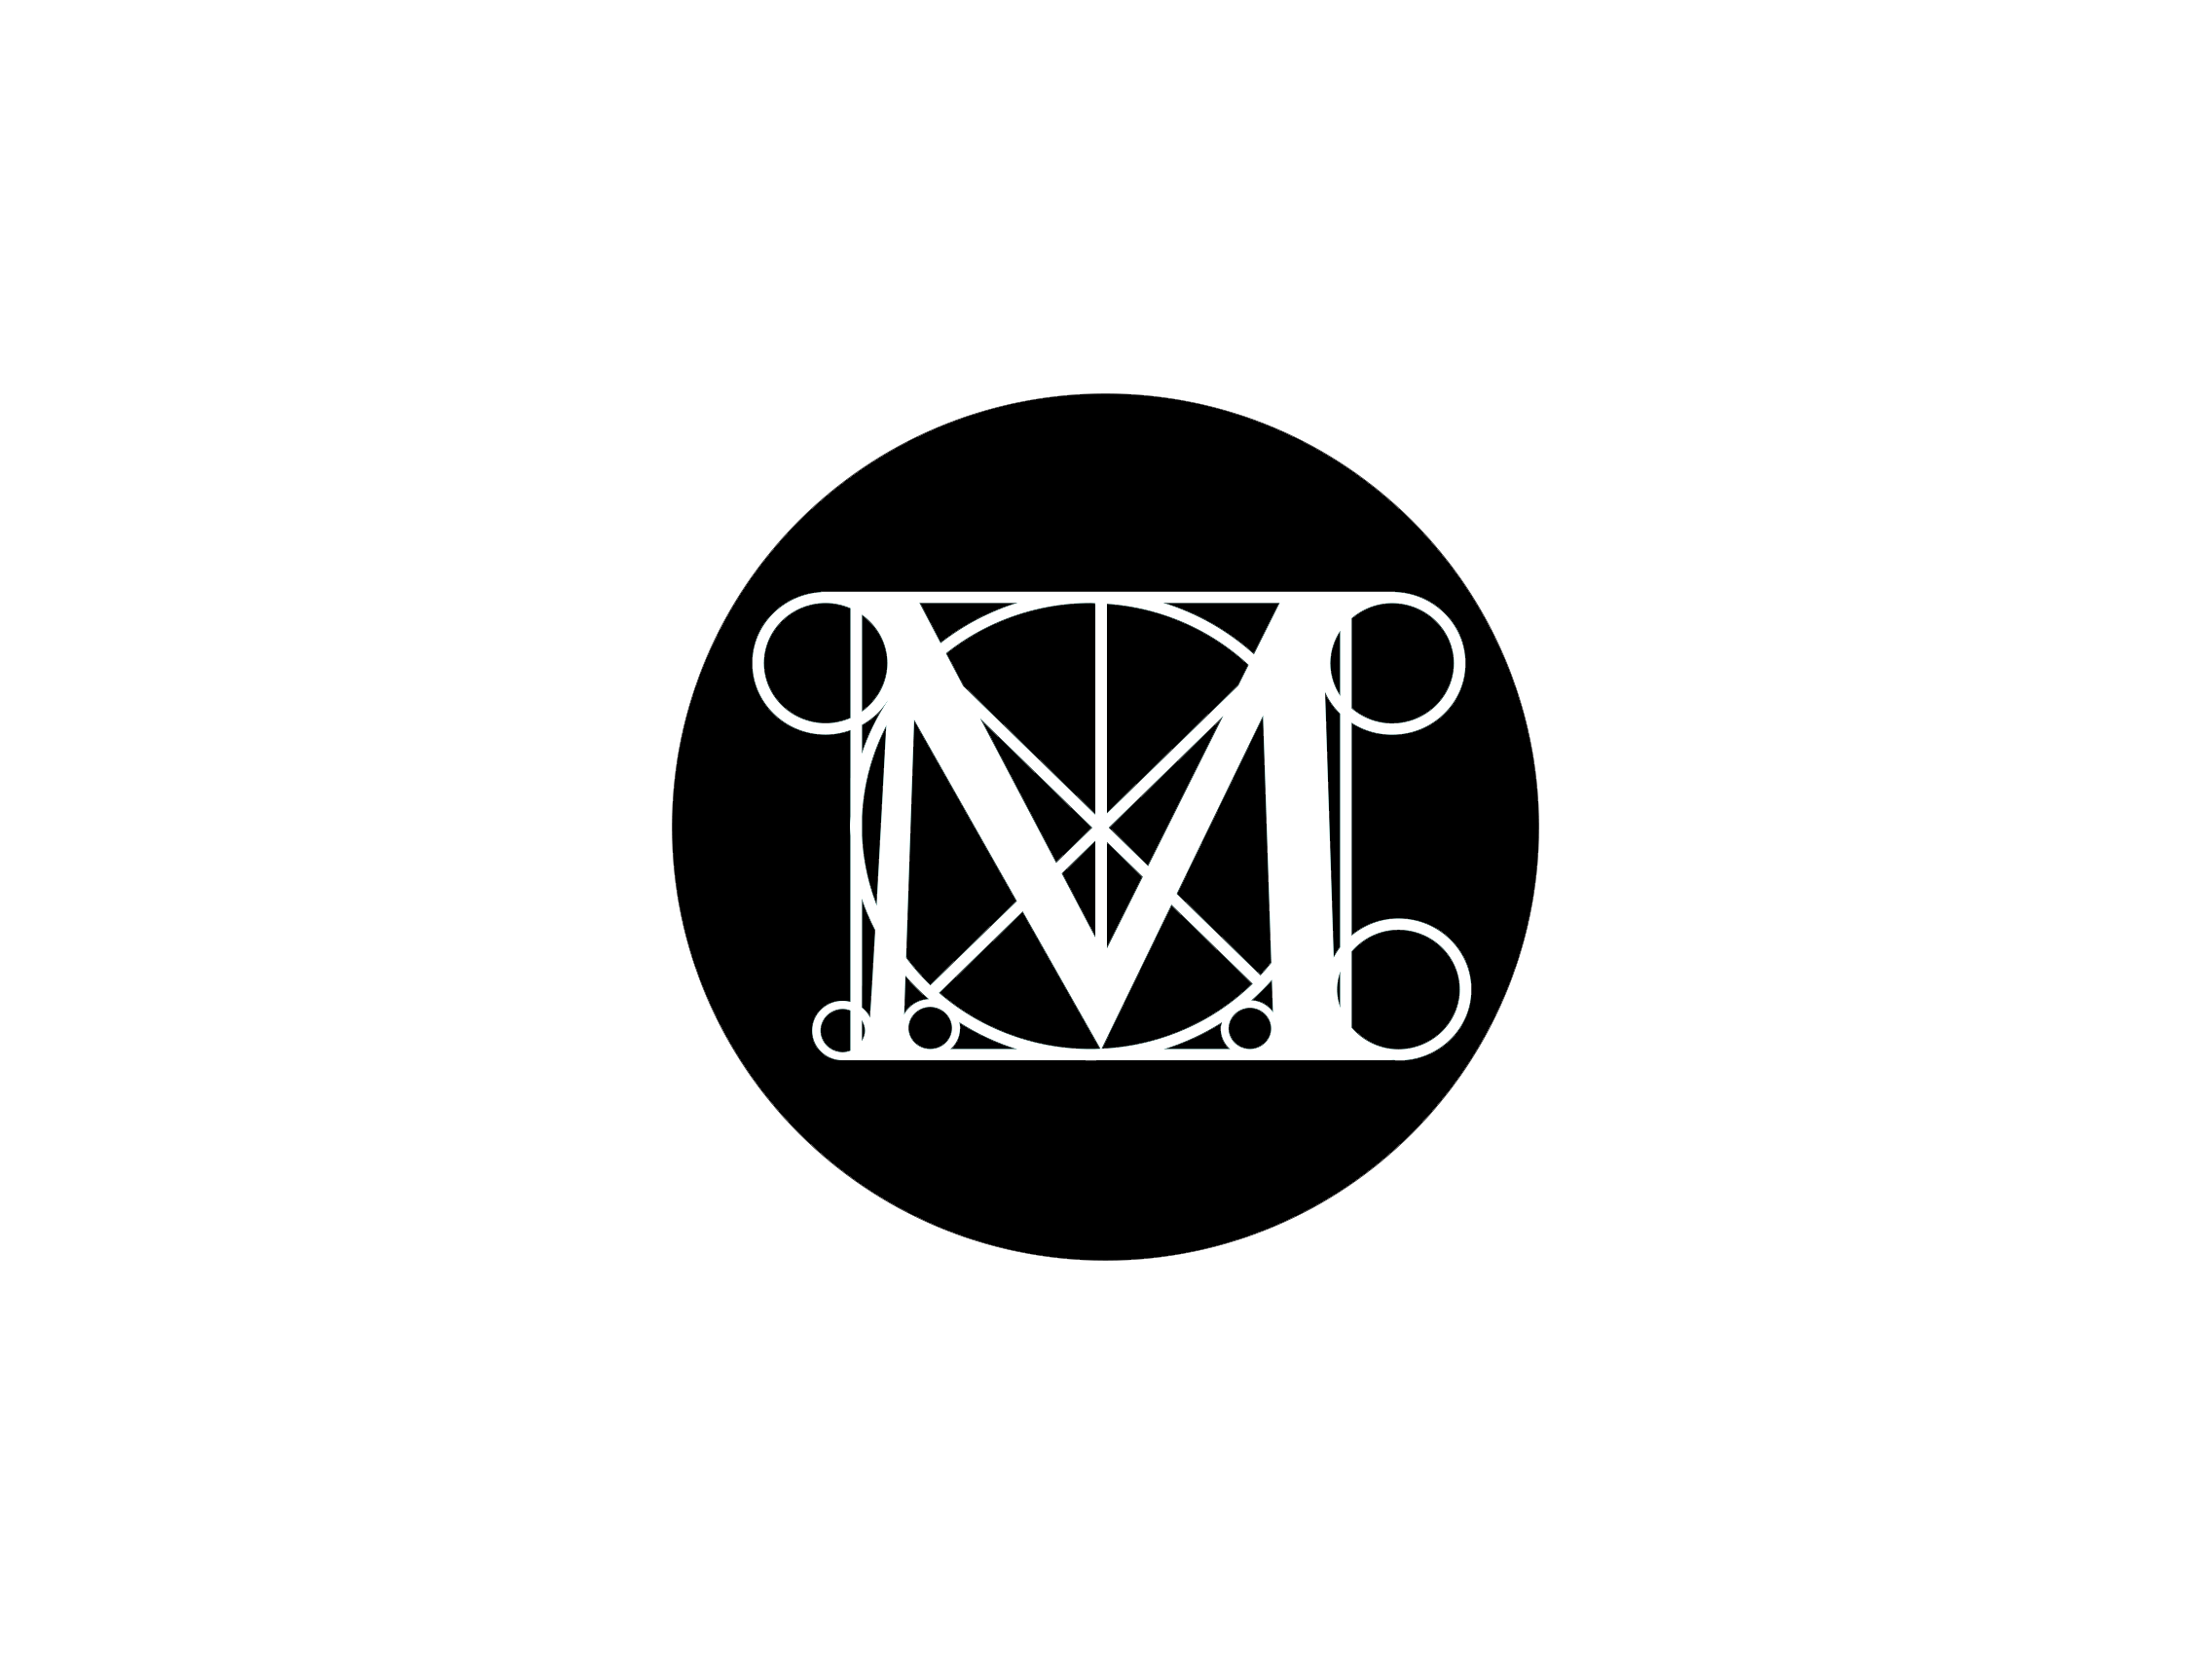 The current Met logo, in use since 1971